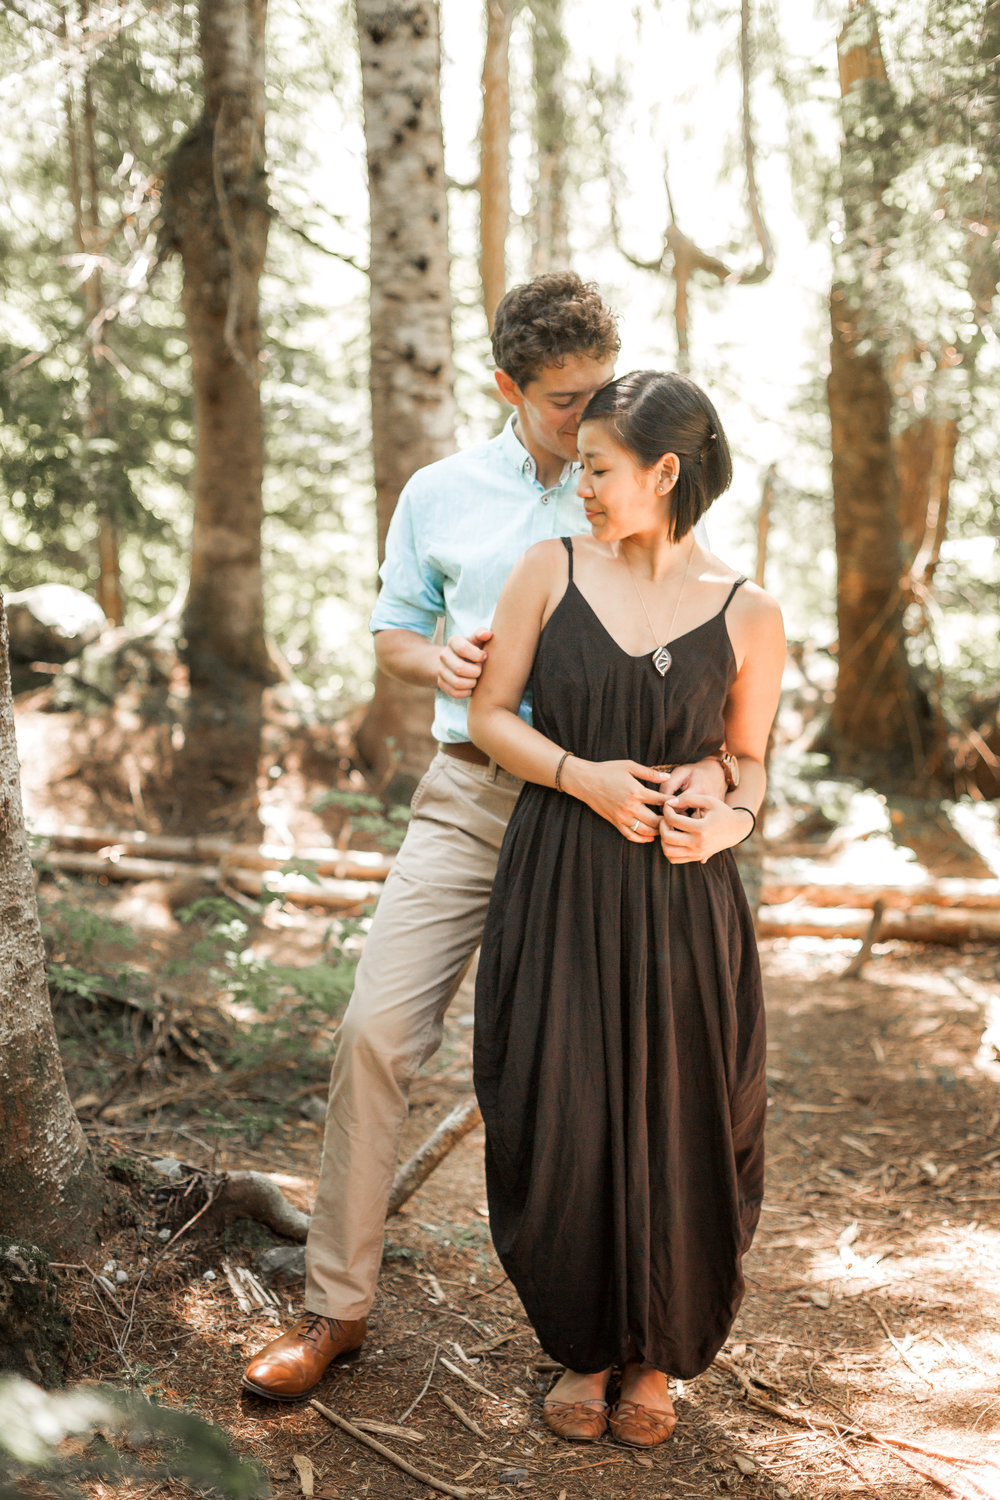 nicole-daacke-photography-hiking-engagement-session-in-snoqualmie-pass-washington-wedding-photographer-seattle-elopement-photography-adventurous-hiking-photos-heather-lake-washington-trails-9.jpg